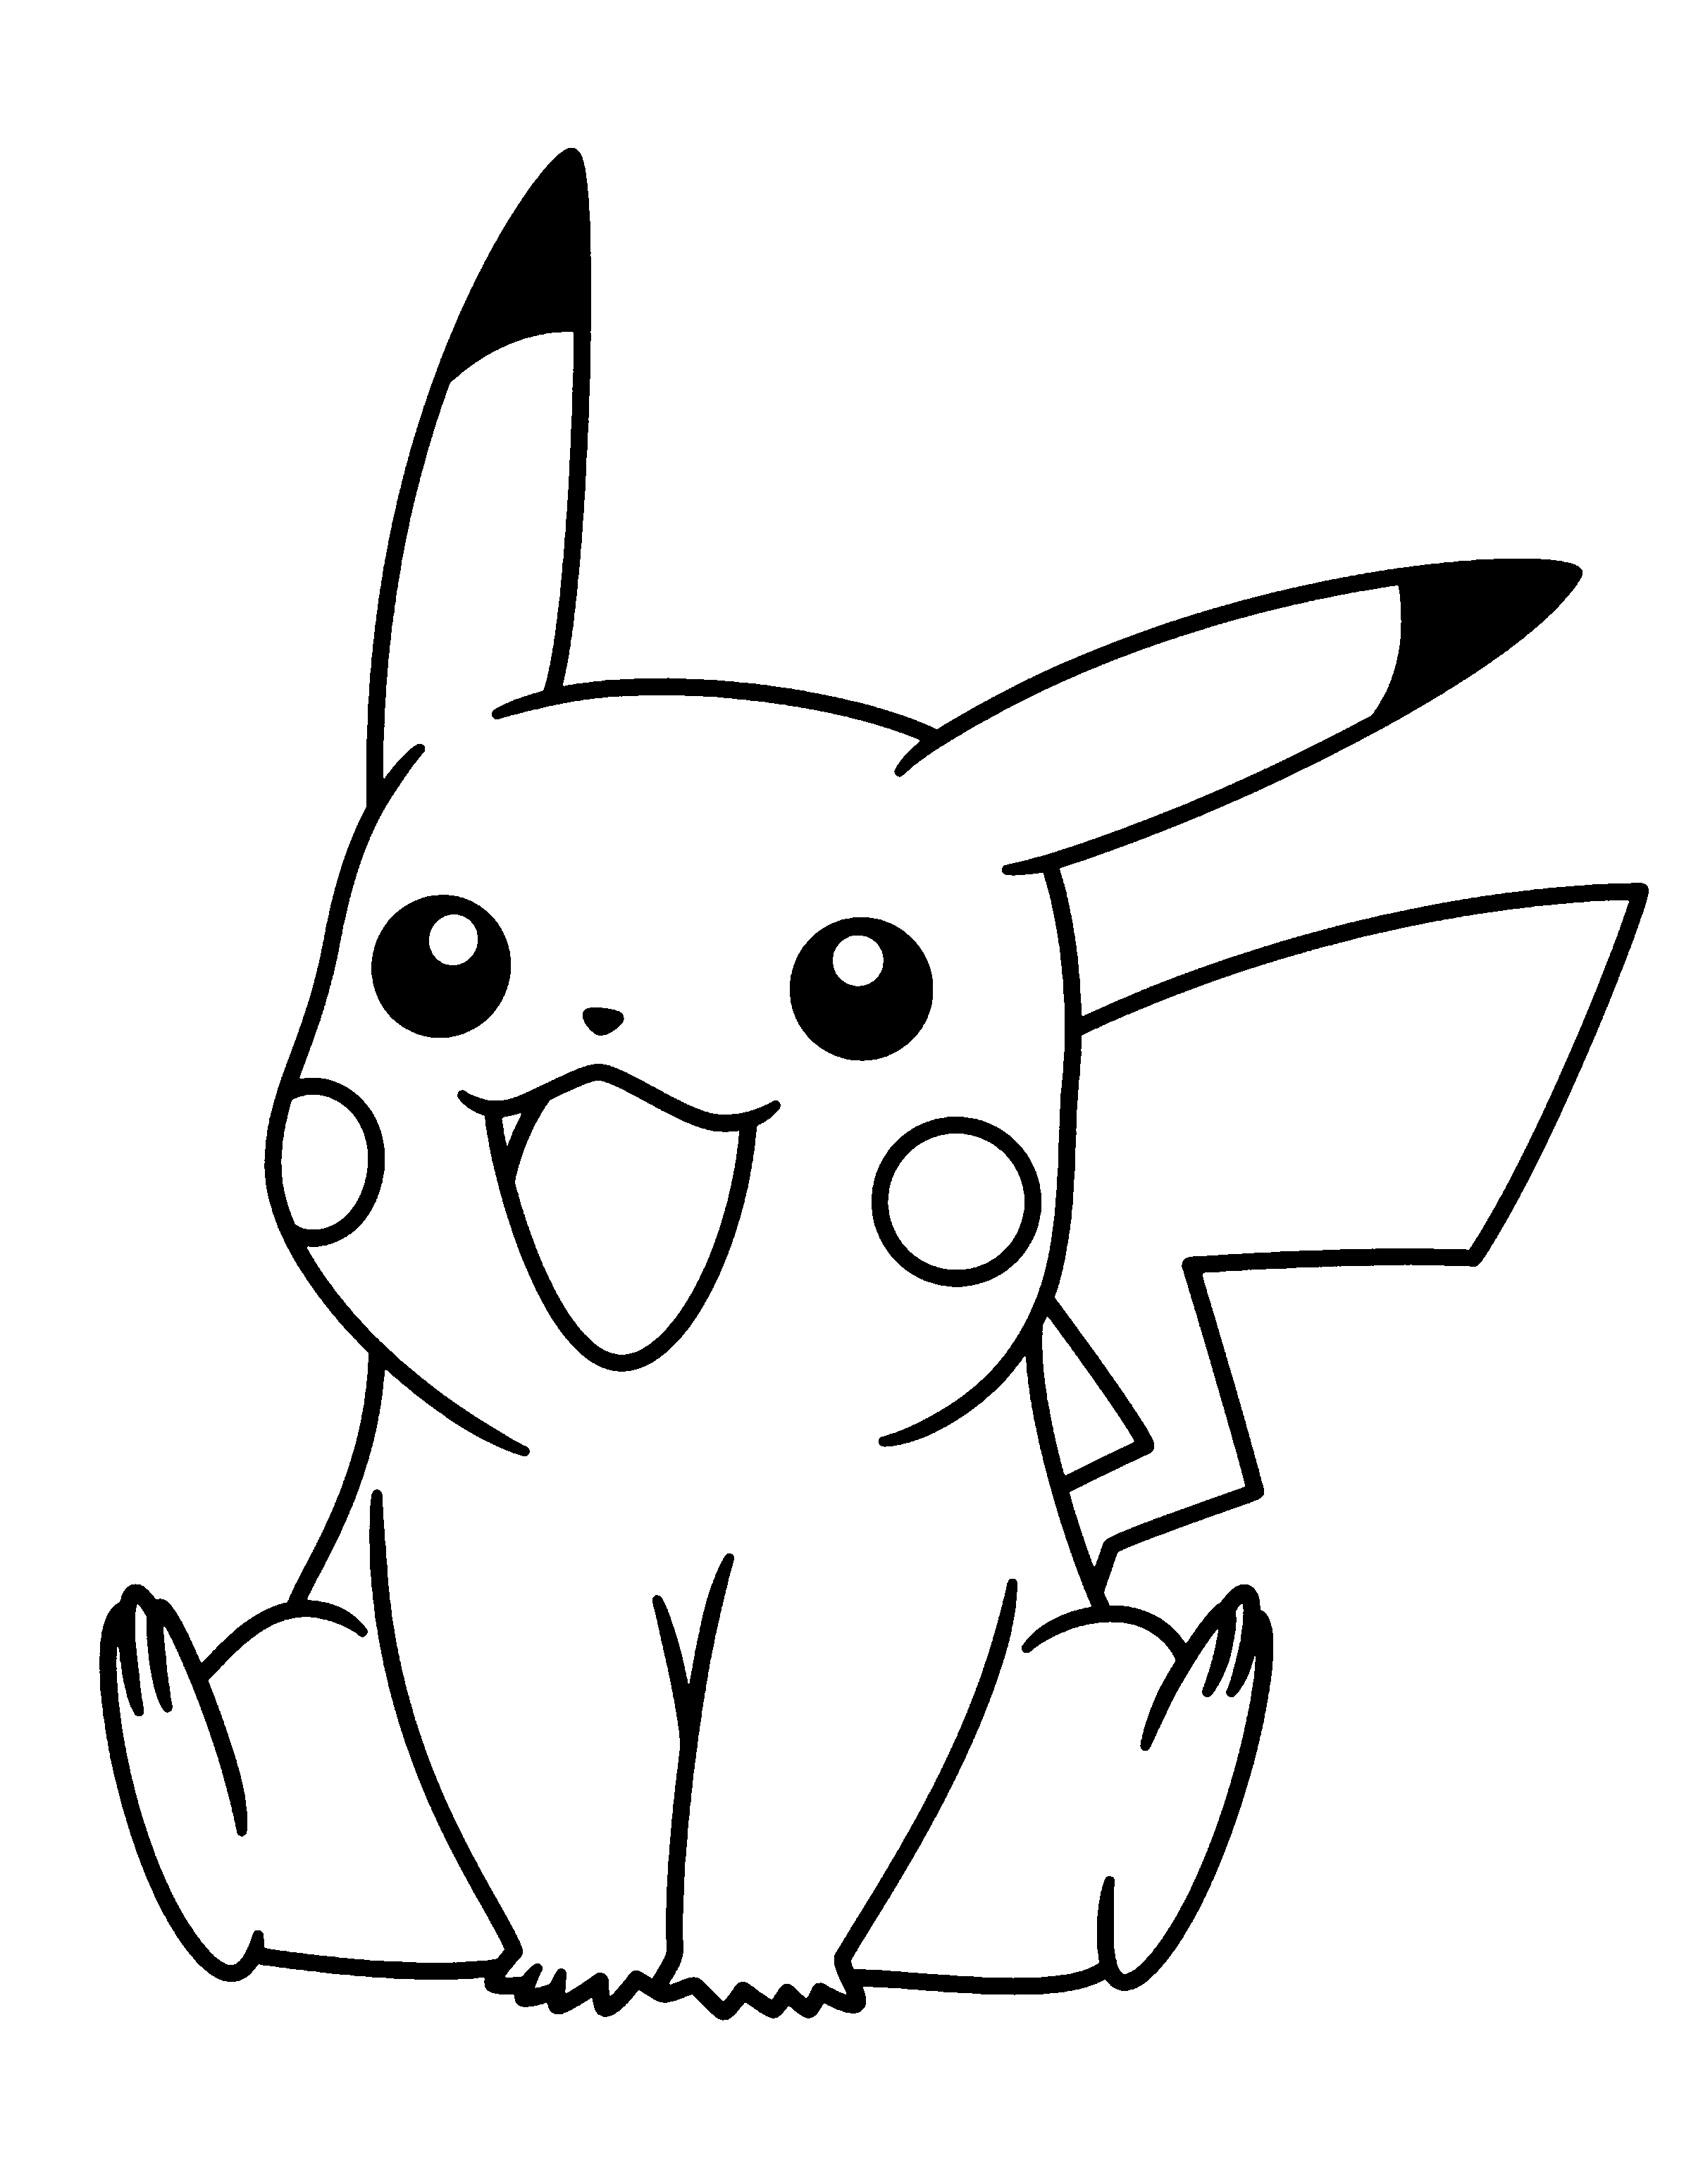 pokemon pictures of pokemon black and white pikachu pokemon black and white coloring pages print of white pictures pokemon black pokemon and